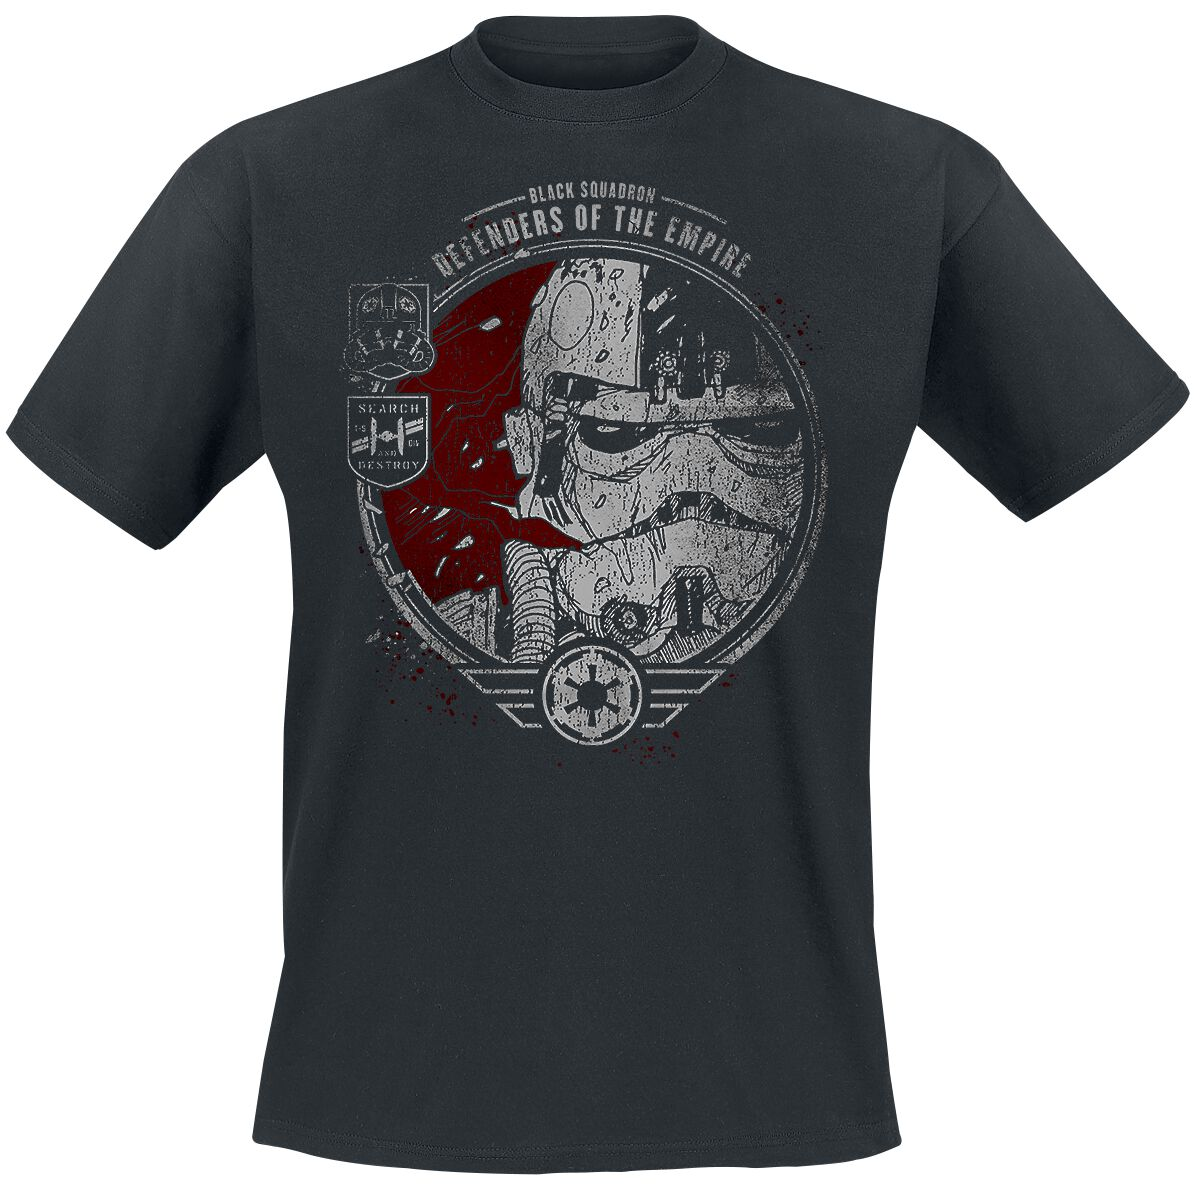 Image of   Star Wars Episode 4 - Eine Neue Hoffnung - Black Squadron T-Shirt sort